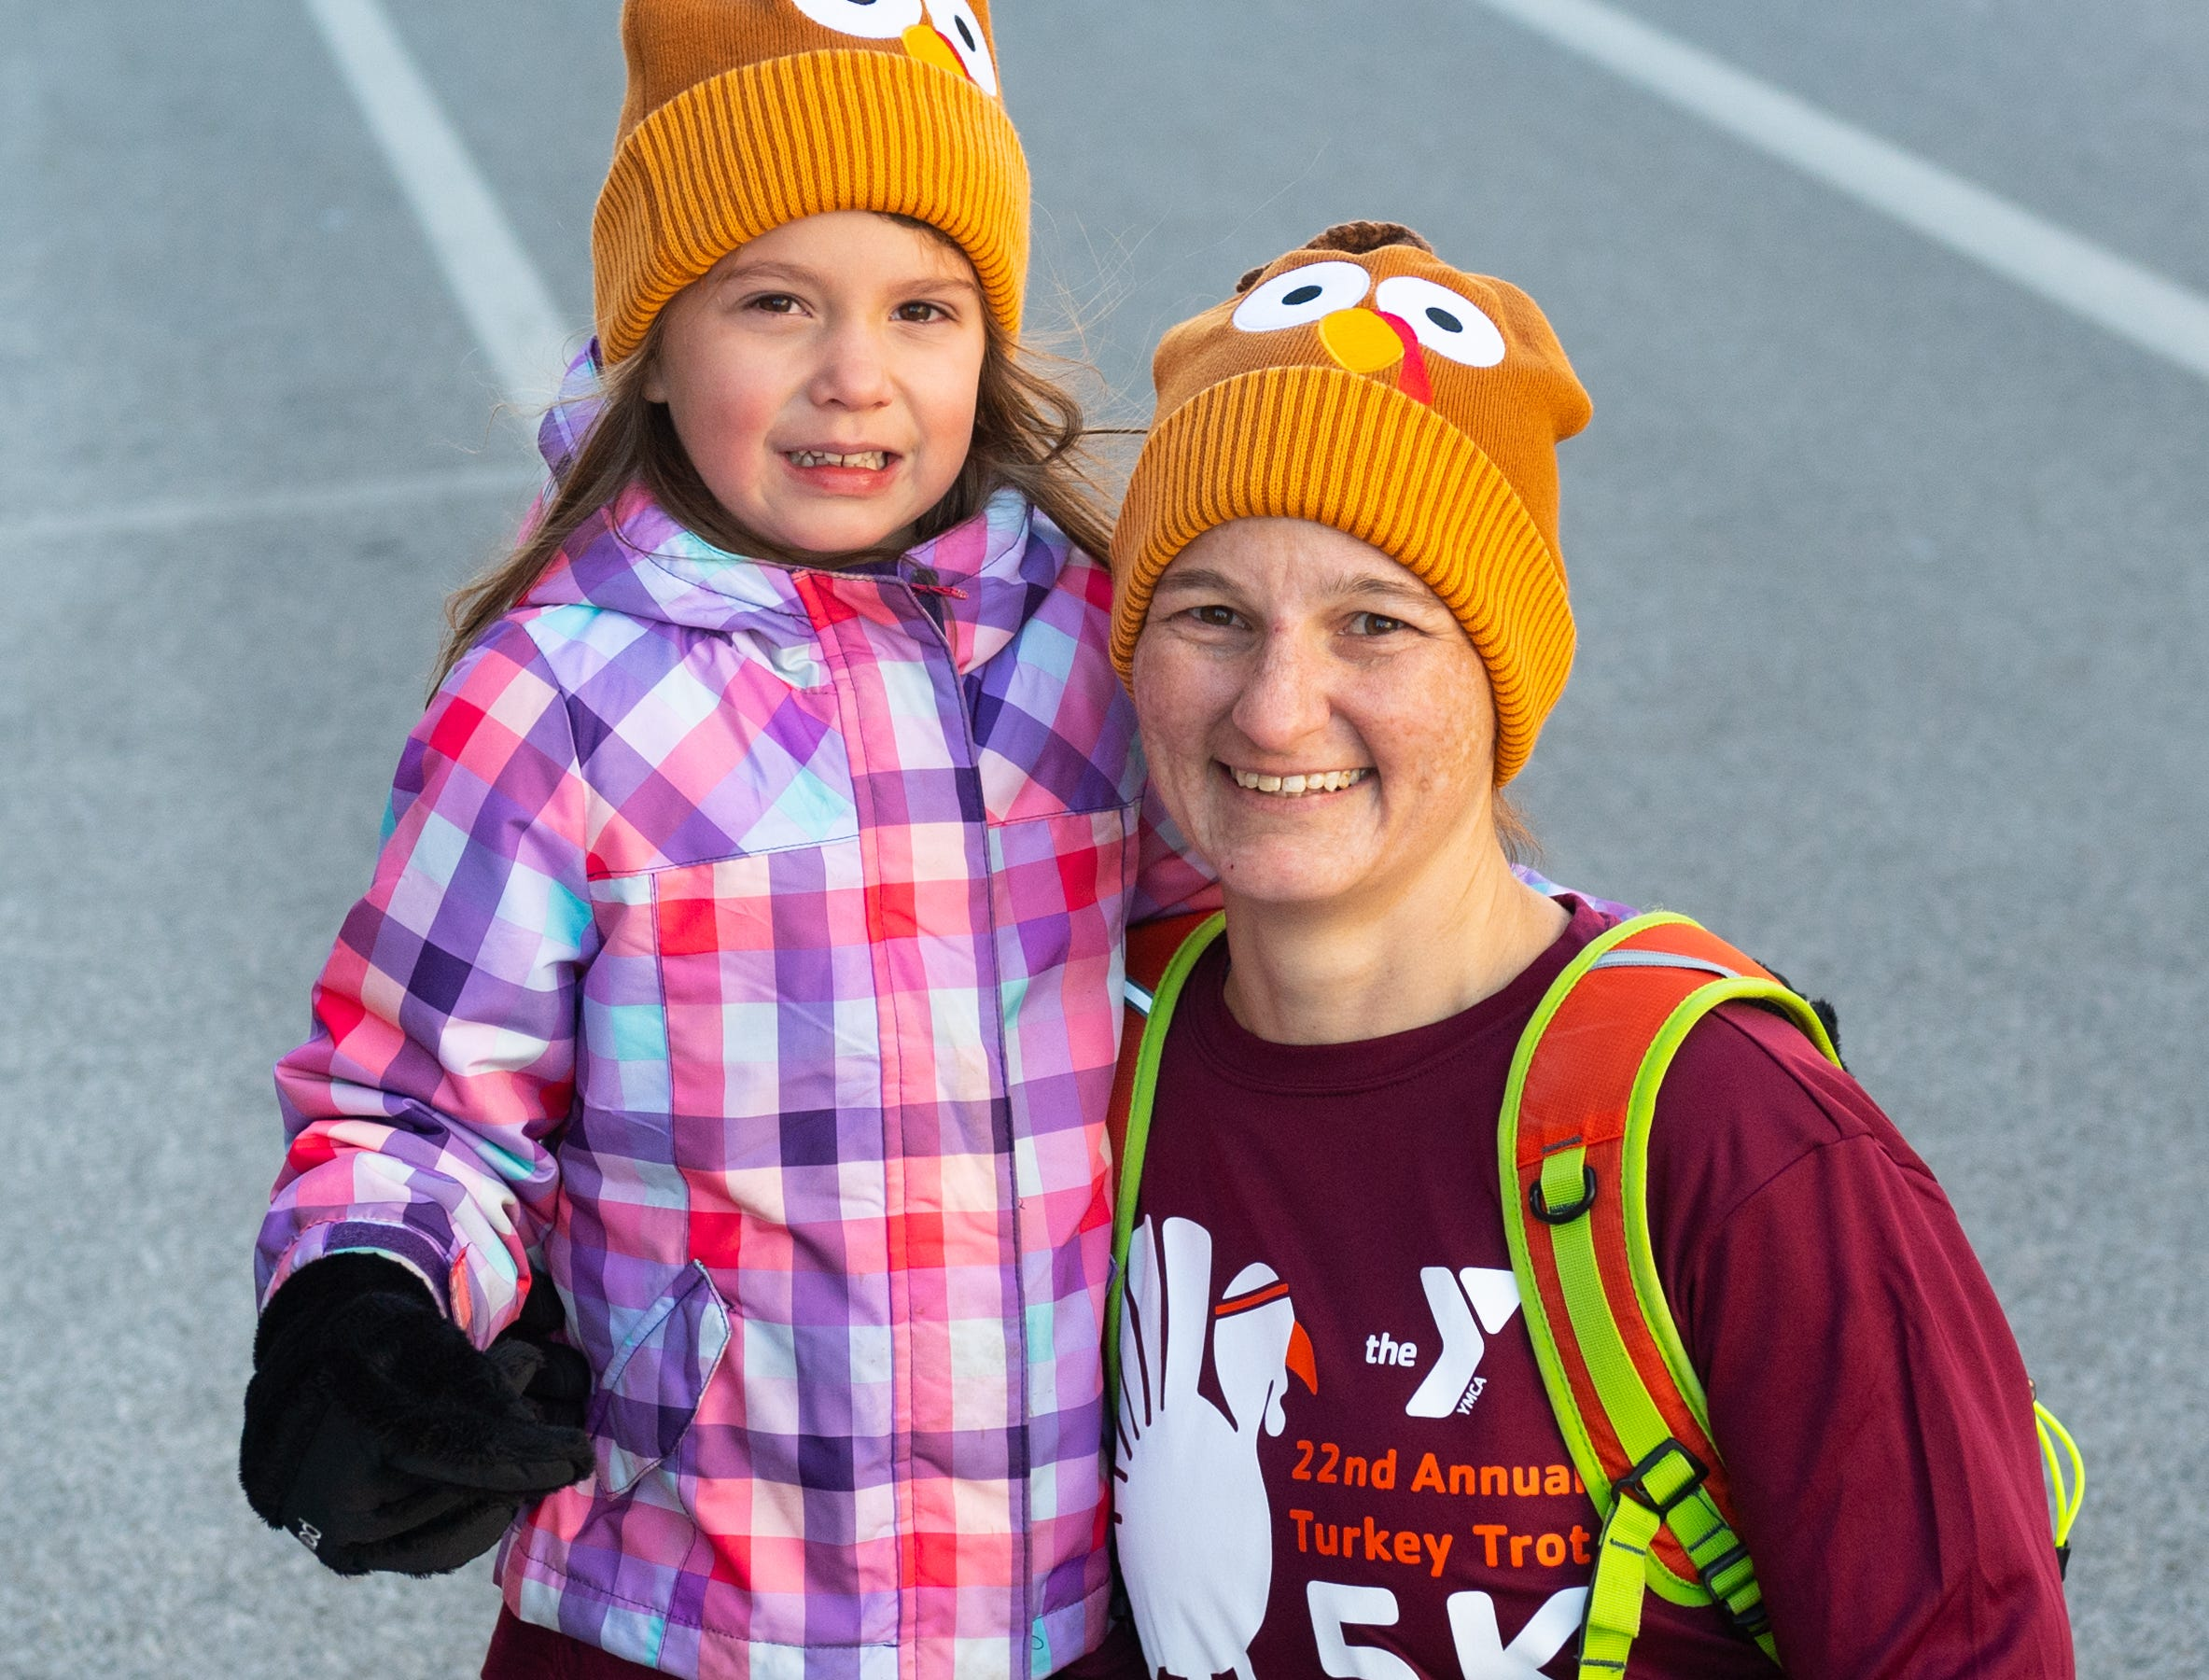 Many parents ran and walked with their children during the 22nd Annual Turkey Trot 5K, on Thanksgiving Day, November 22, 2018.